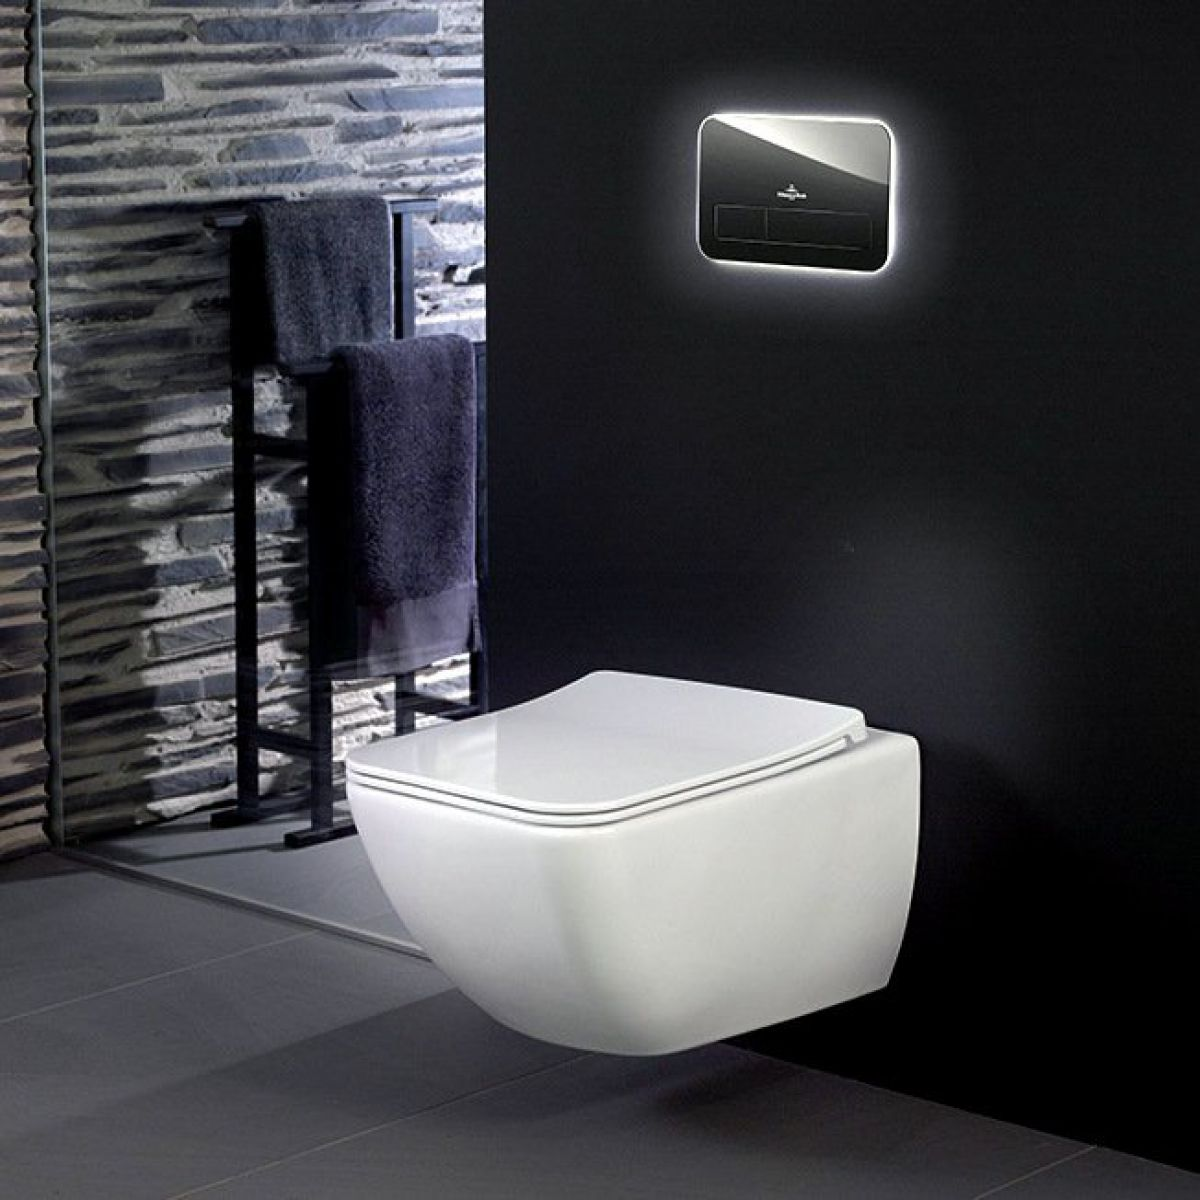 villeroy boch venticello rimless wall hung toilet bathrooms direct yorkshire. Black Bedroom Furniture Sets. Home Design Ideas